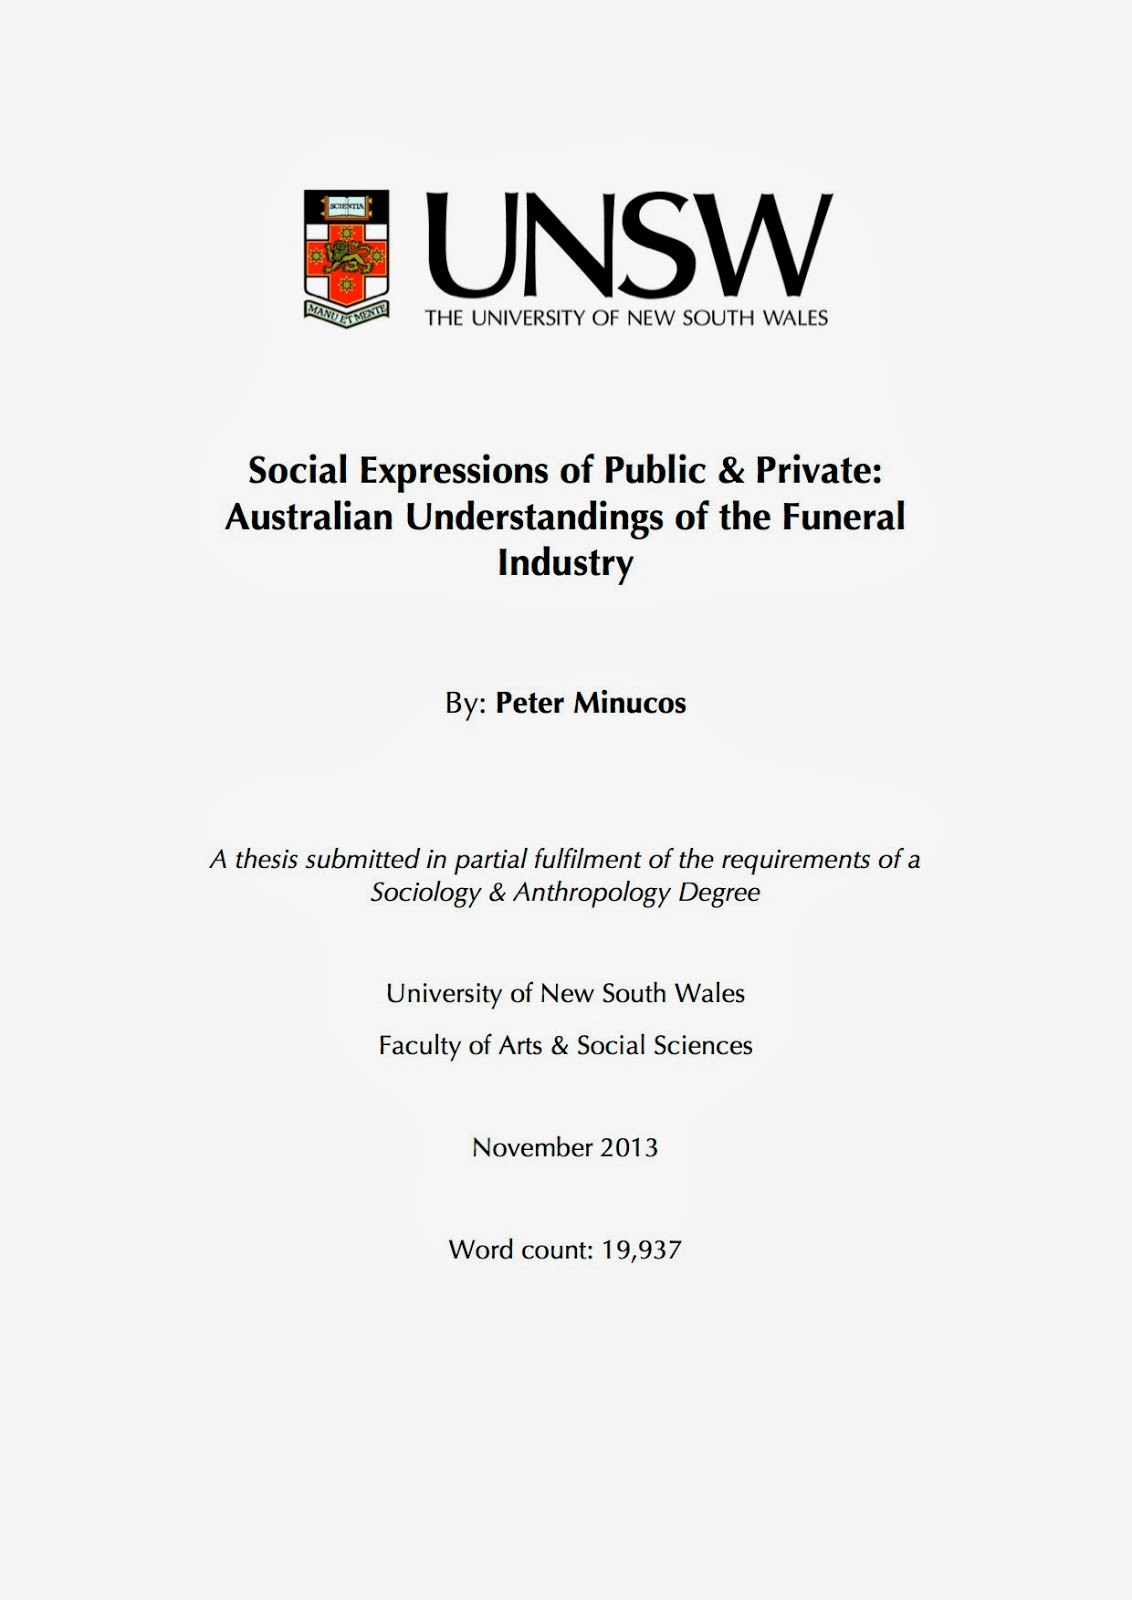 Phd thesis document